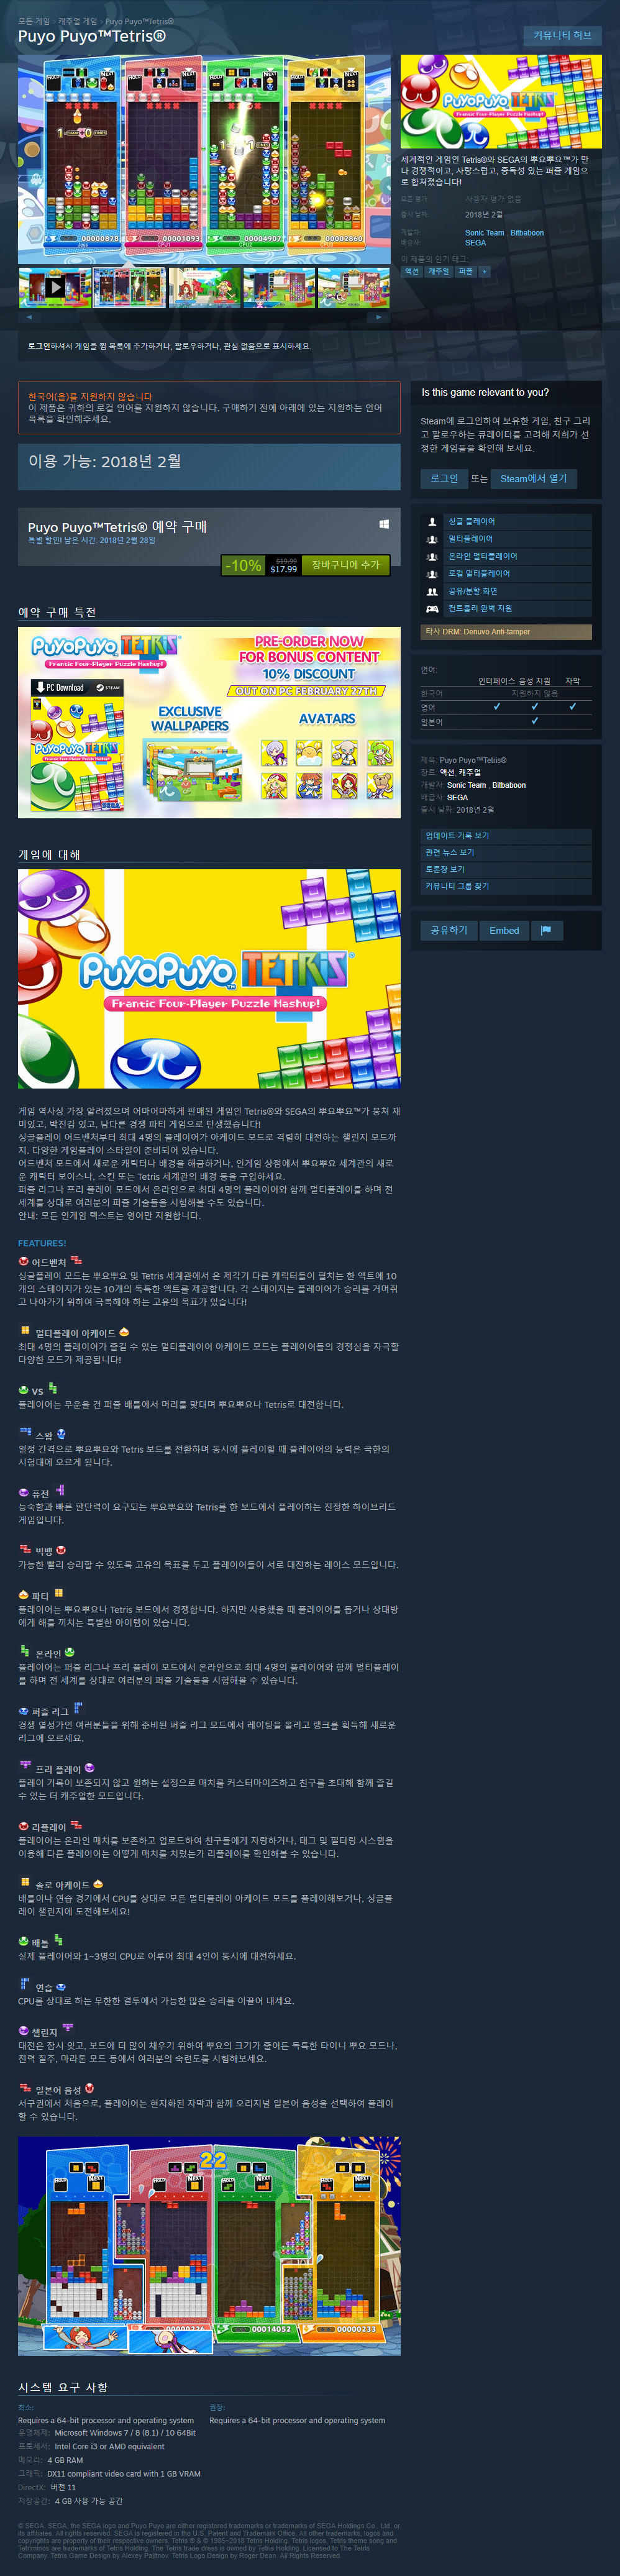 screencapture-store-steampowered-app-546050-Puyo_PuyoTetris-1517937431366.jpg